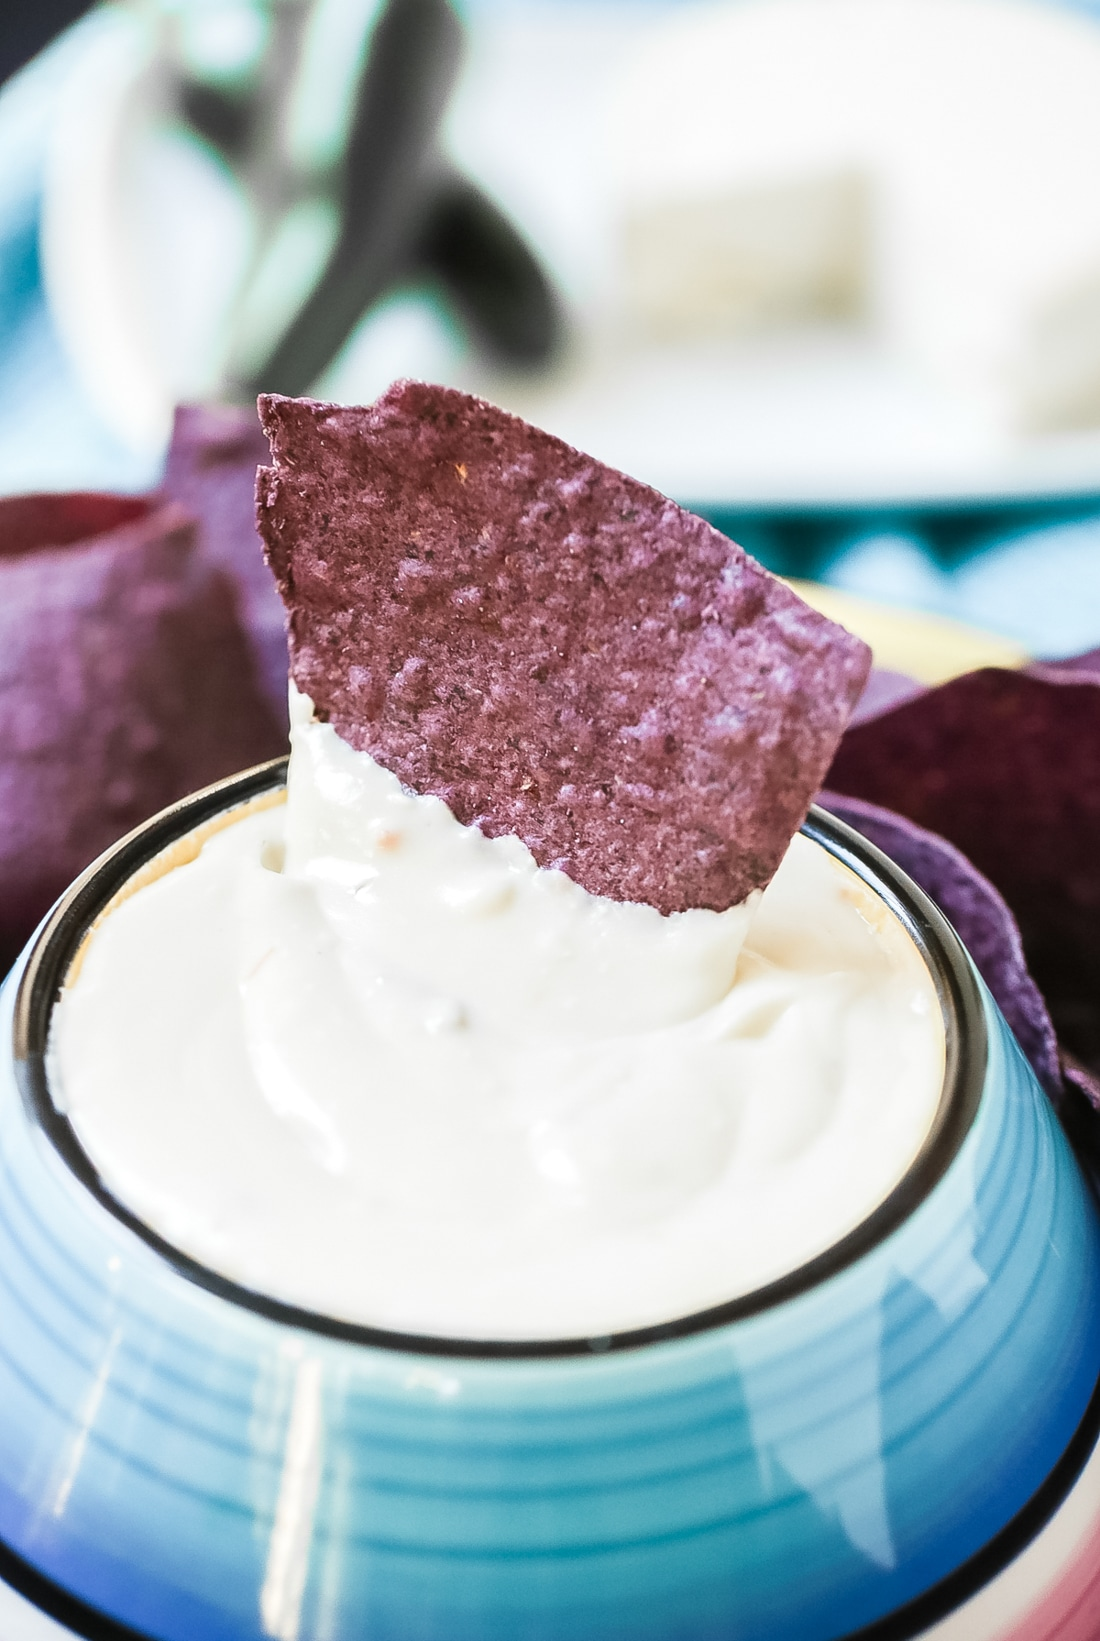 Best Beer Cheese Dip Recipe #ASpicyPerspective #BeerCheeseDip #BeerCheese #Queso #Dip #Appetizer #CincodeMayo #3Ingredient #Cheese #CheeseDip